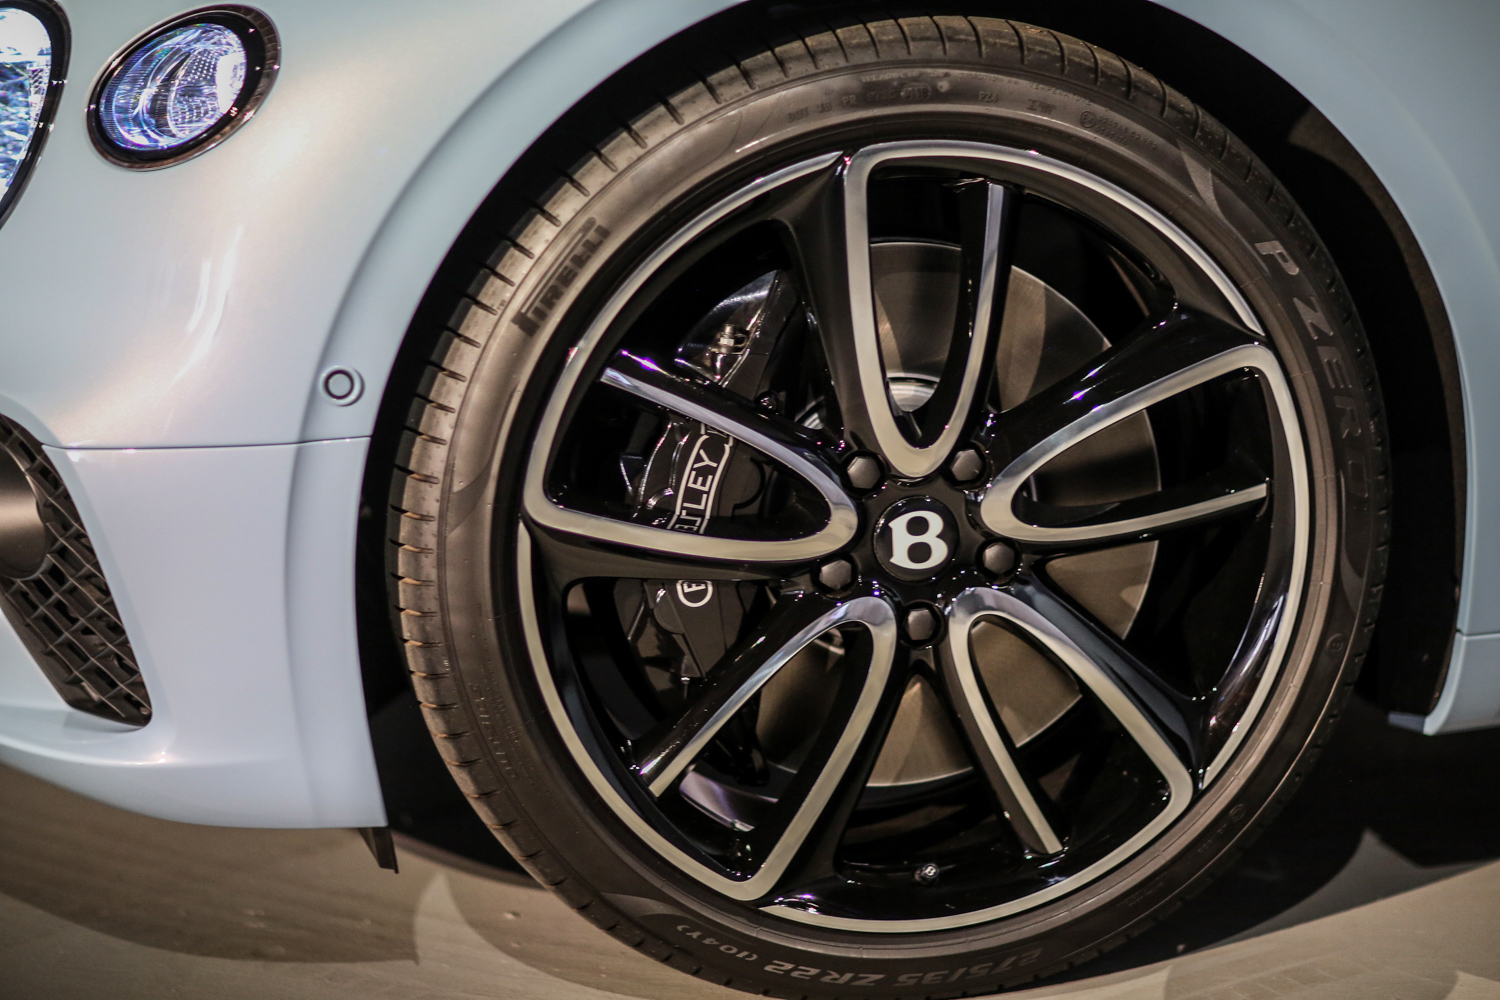 Bentley brakes 16.5-inch front brakes use 10-piston calipers